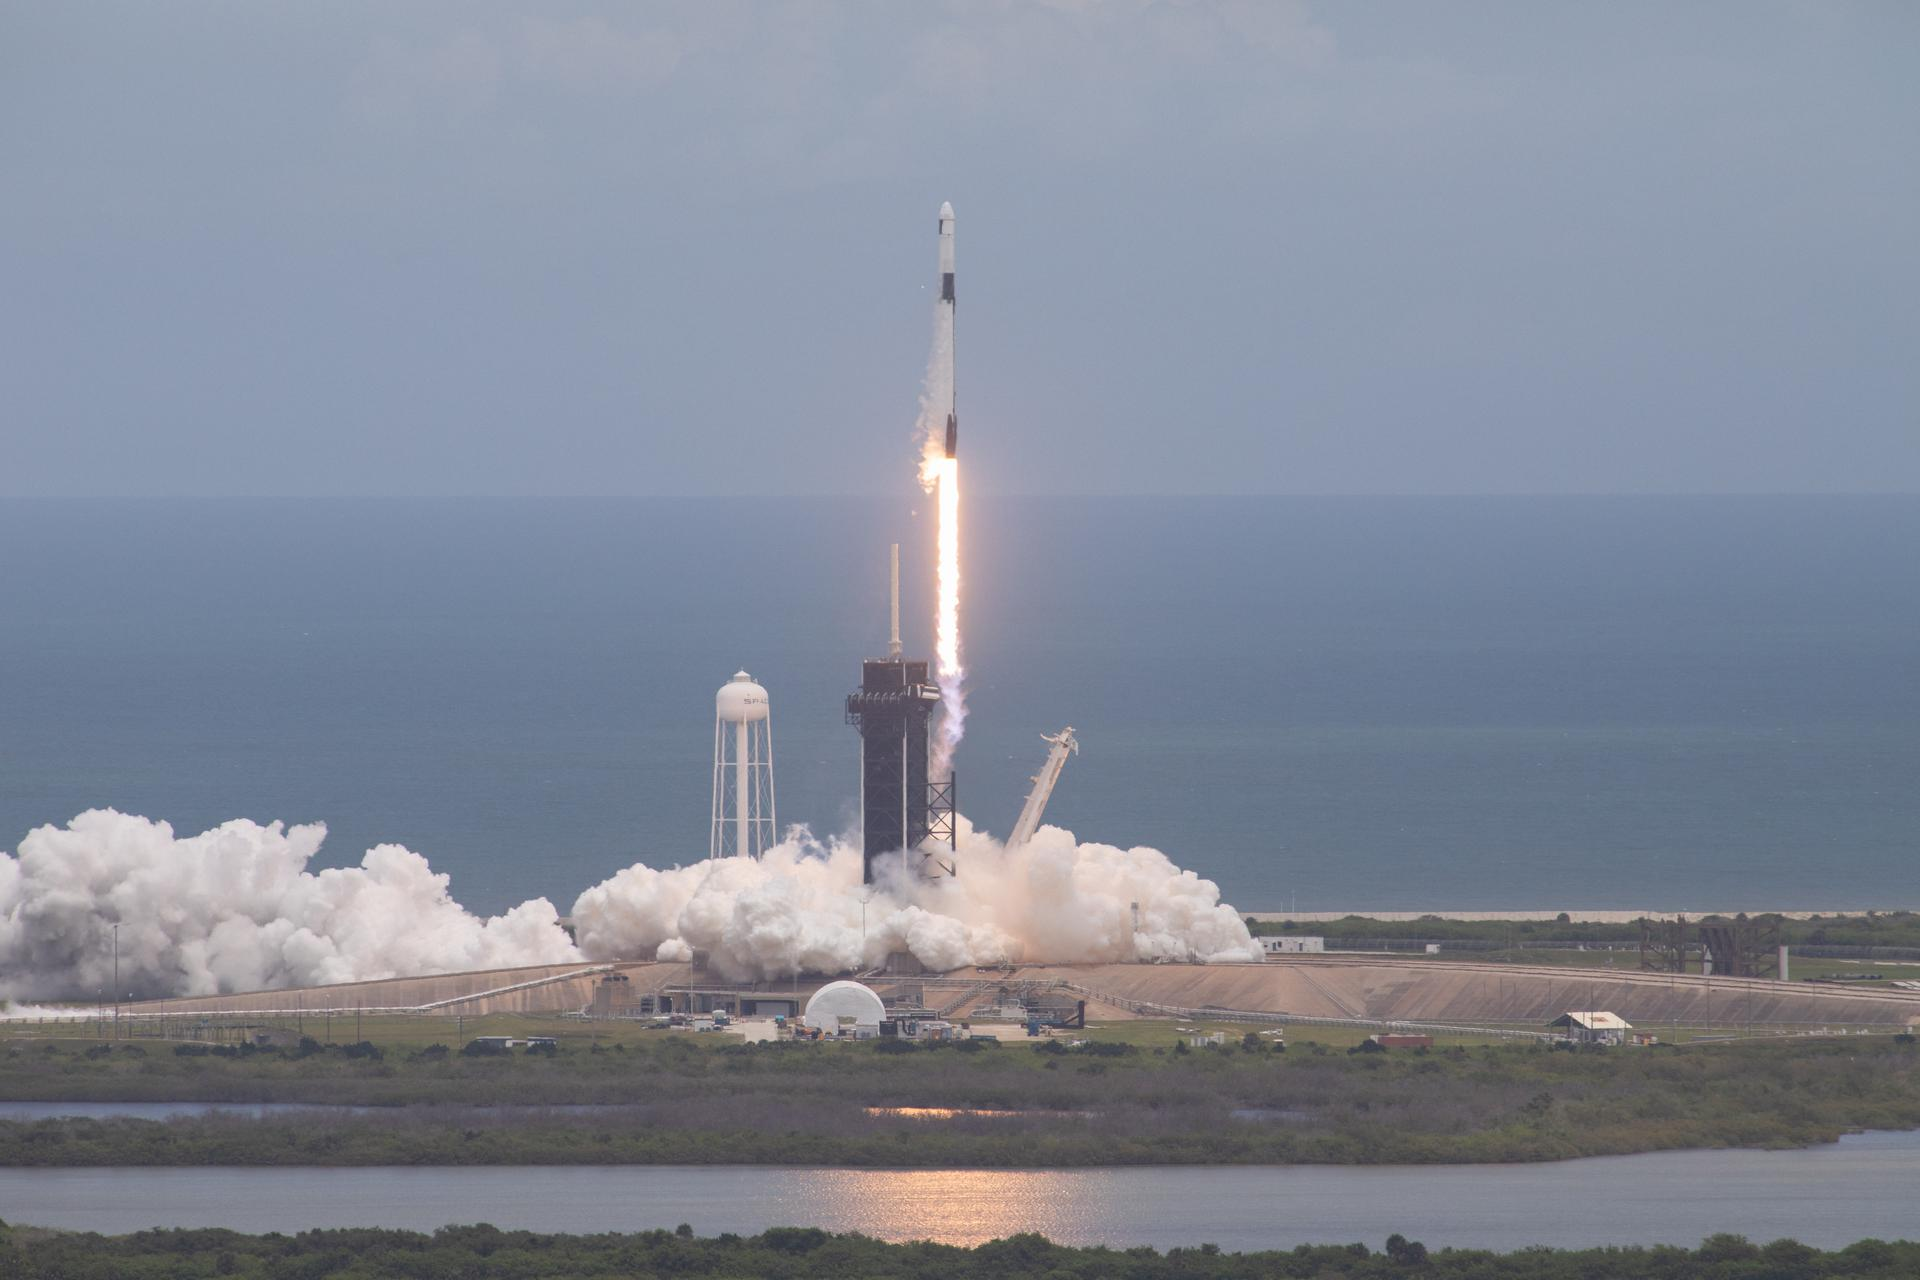 A SpaceX Falcon 9 rocket and Dragon spacecraft lift off from Kennedy Space Center's Launch Complex 39A on June 3, 2021.